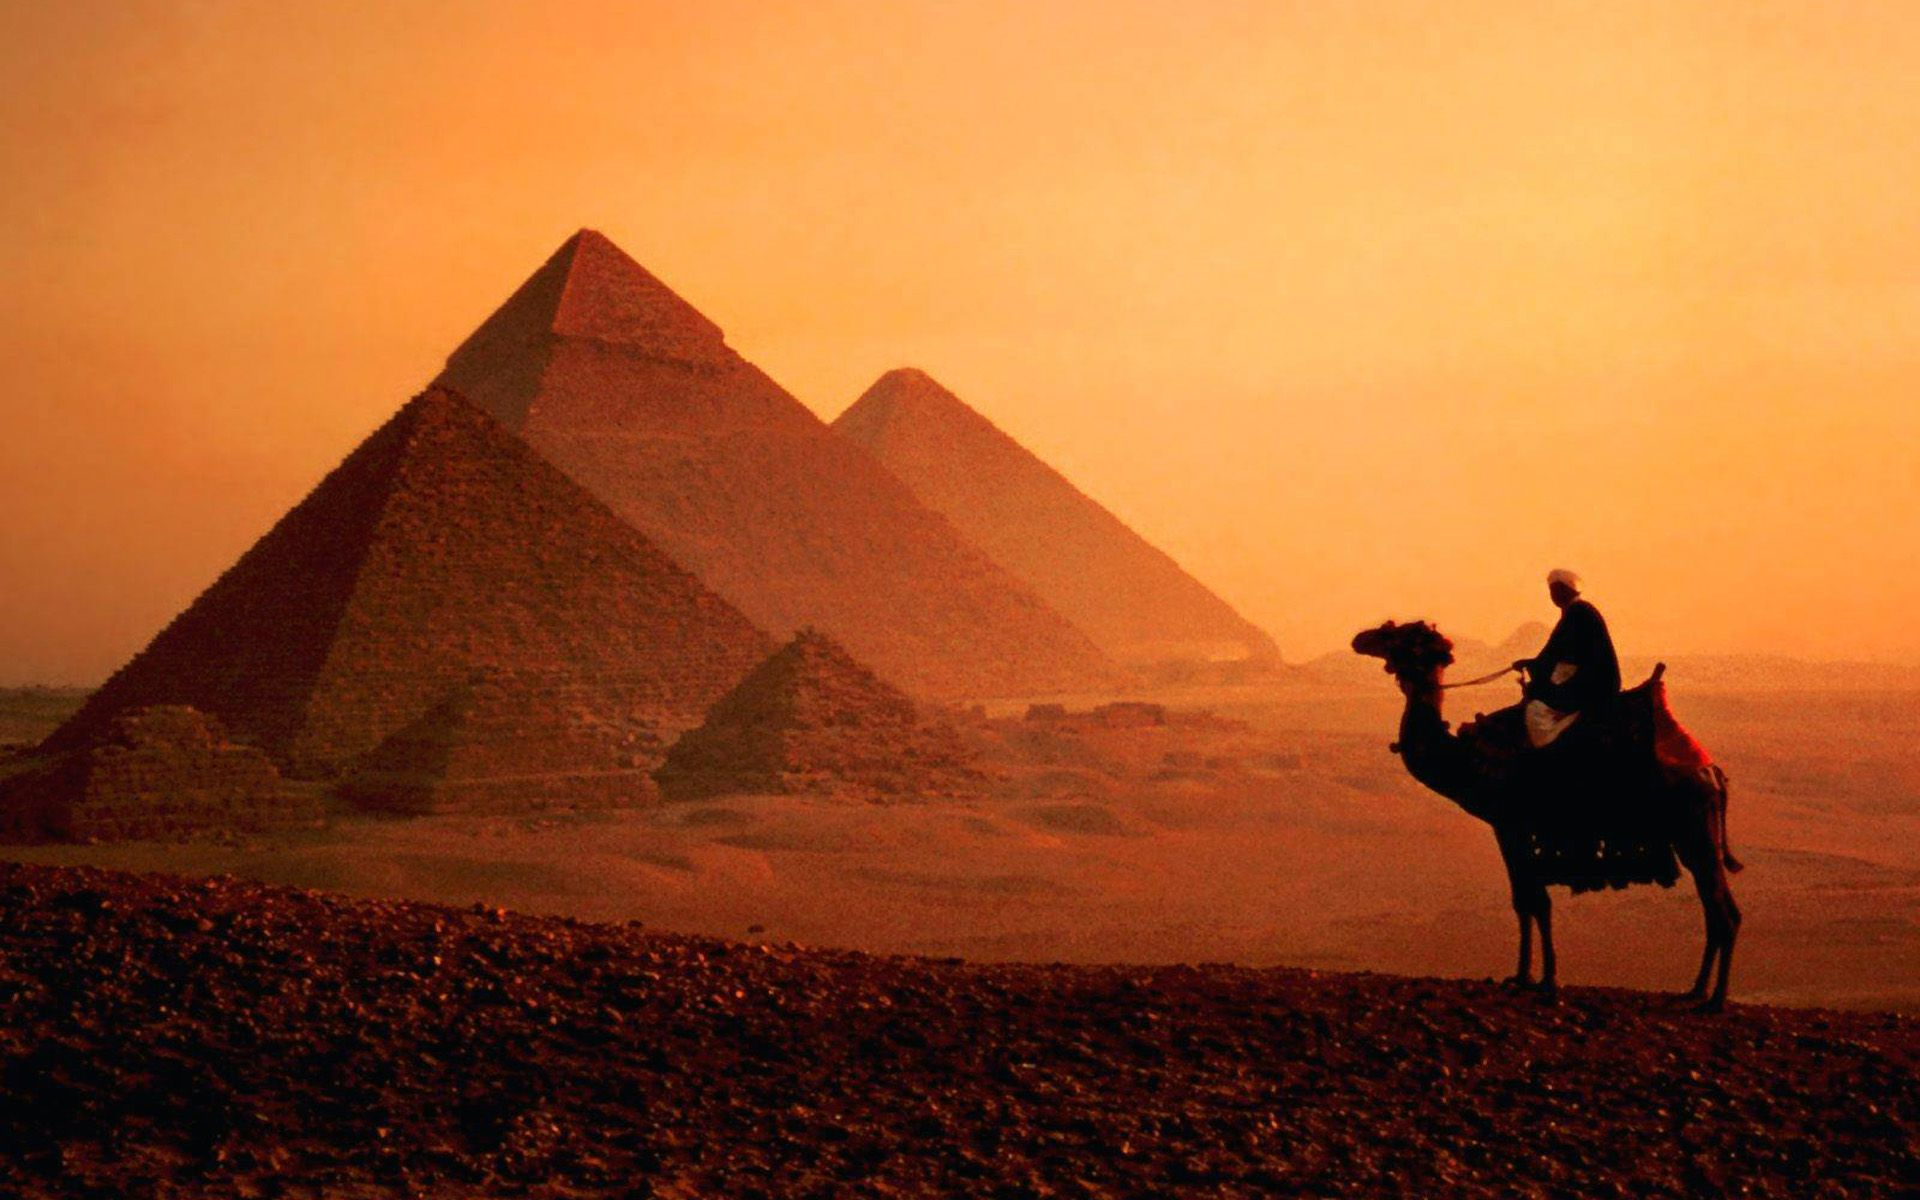 8589130570139-dusk-camel-pyramids-cairo-egypt-top-travel-lists-wallpaper-hd